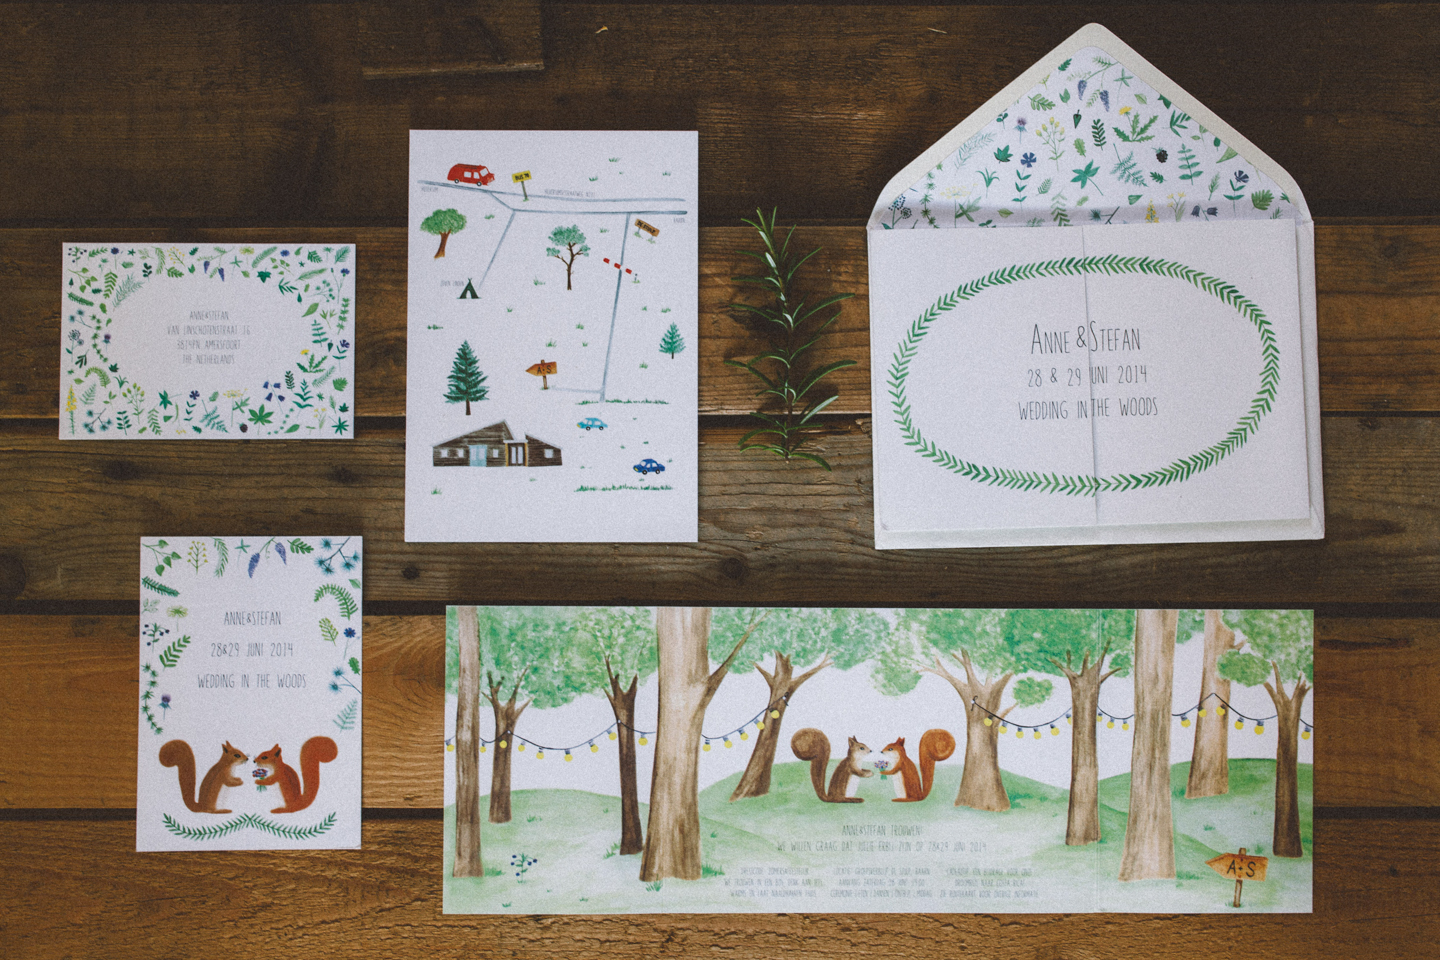 wedding-in-the-woods-inspire-styling-photo-by-oakfir-62.jpg